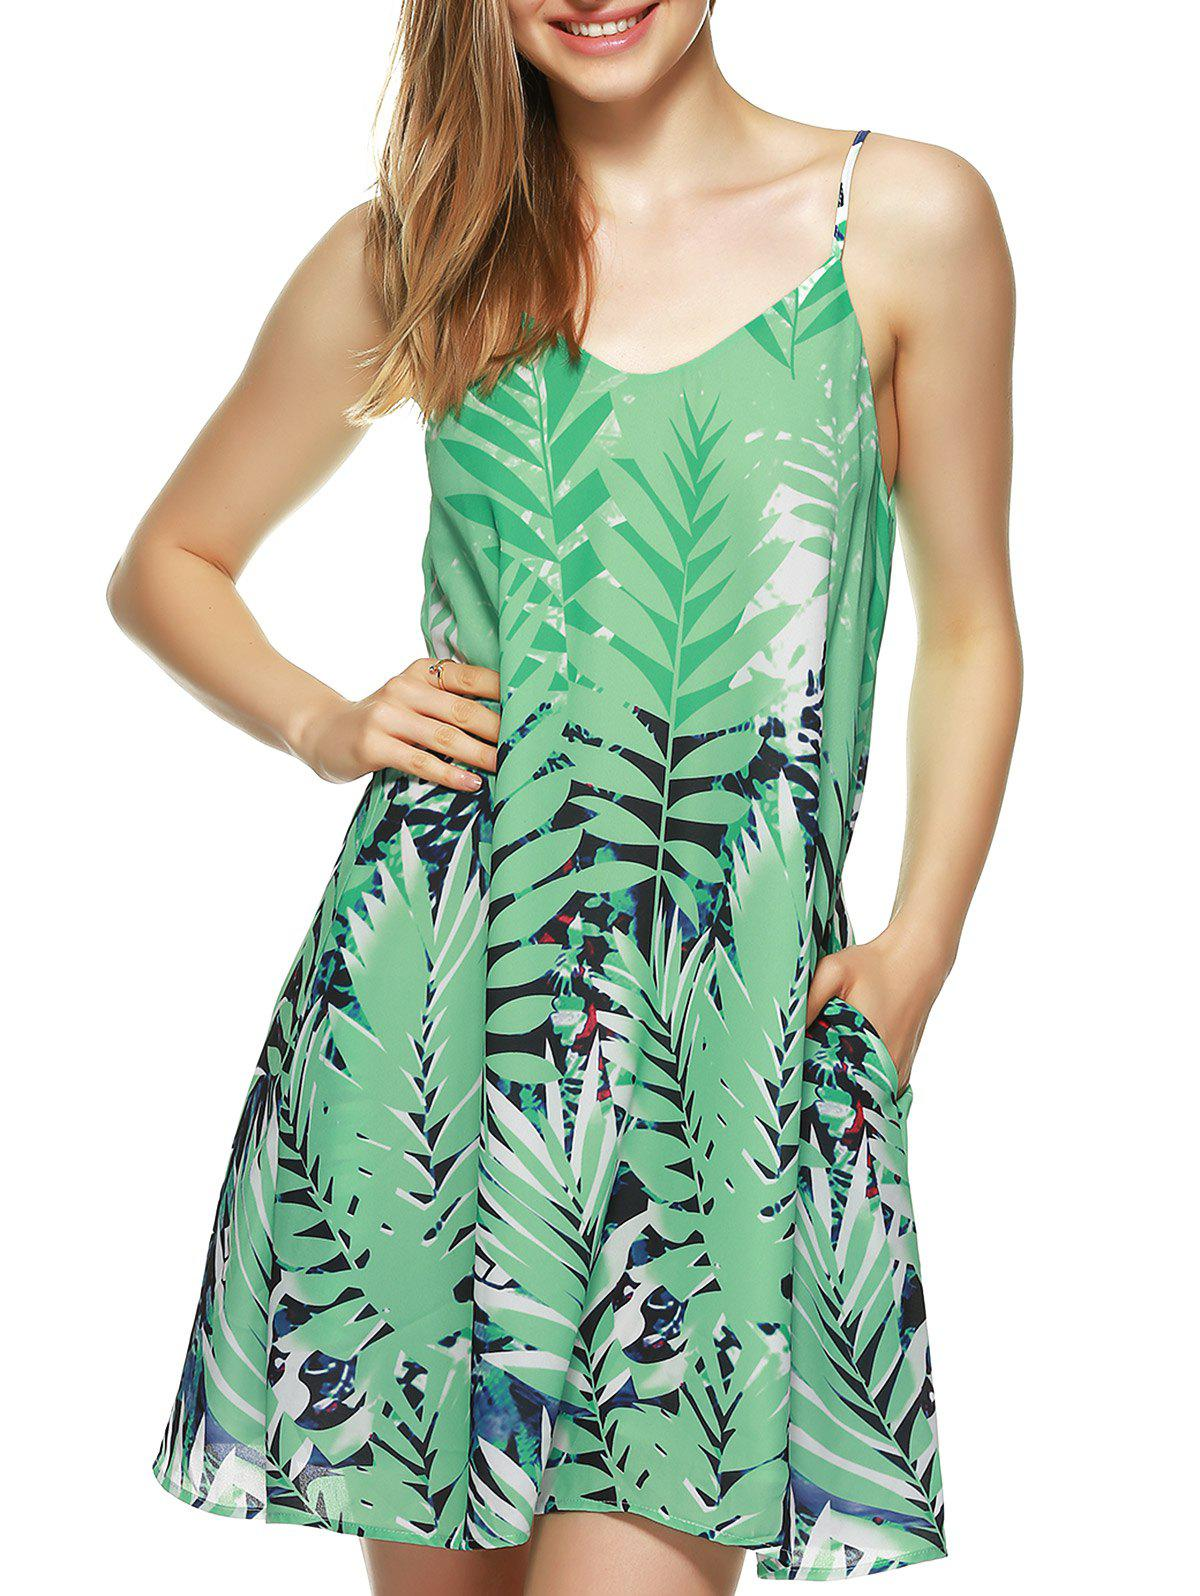 Spaghetti Strap Leaf Print Summer Dress